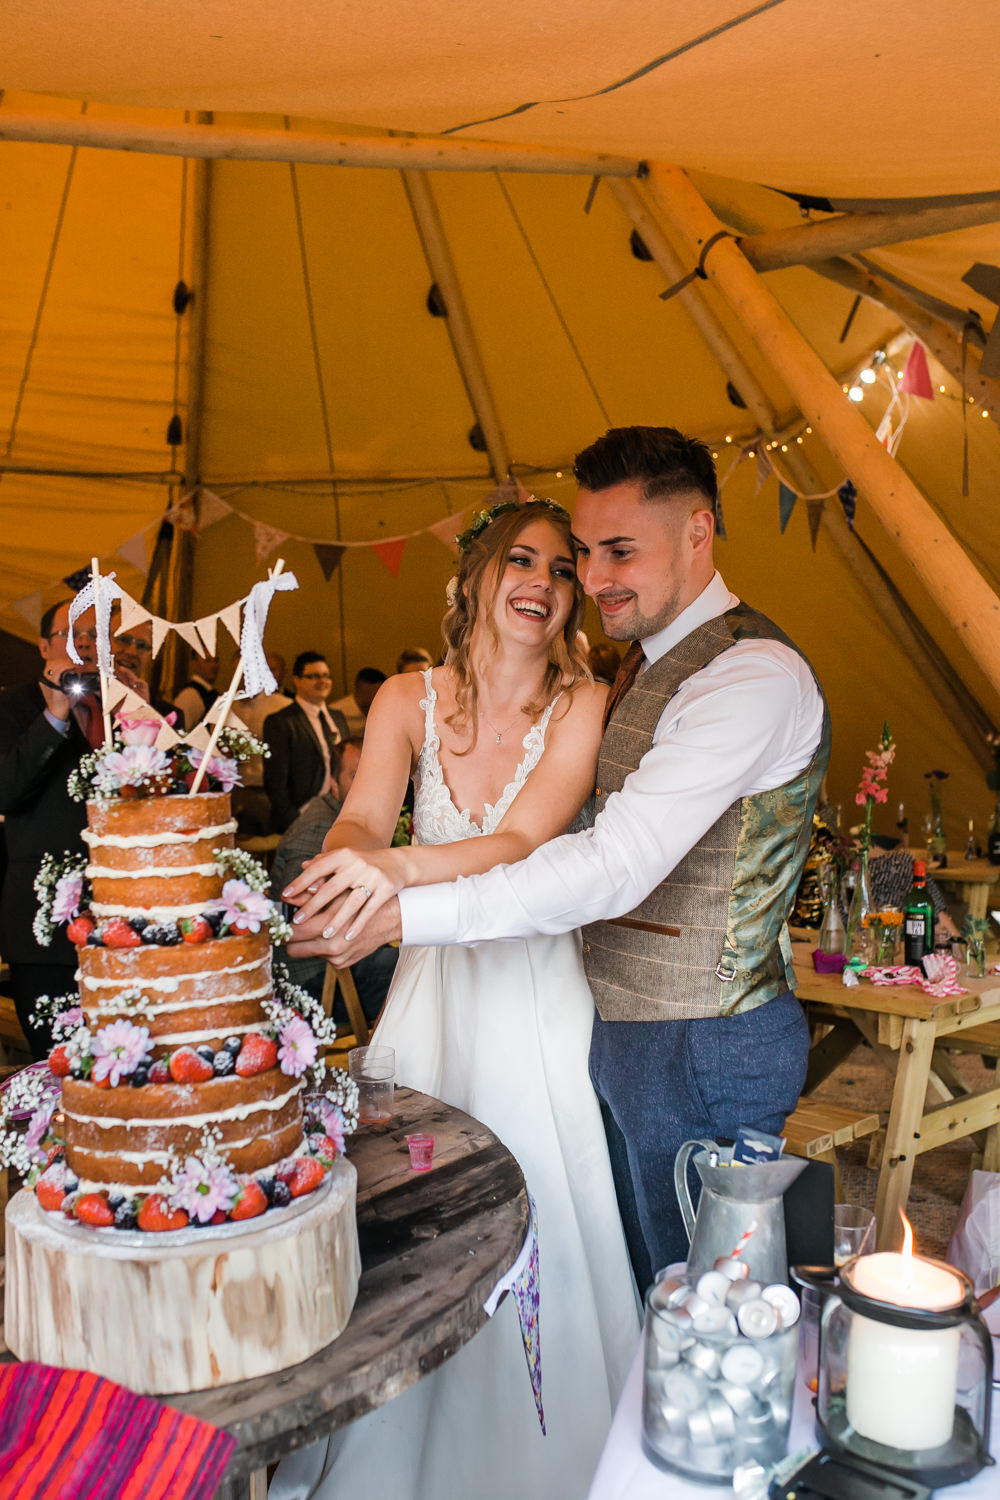 Bride Bridal V Neck A Line Dress Gown Lace Edged Veil Flower Crown Victoria Sponge Cake Bunting Waistcoat Tweed Suit Groom Lincolnshire Tipi Wedding Jessy Jones Photography